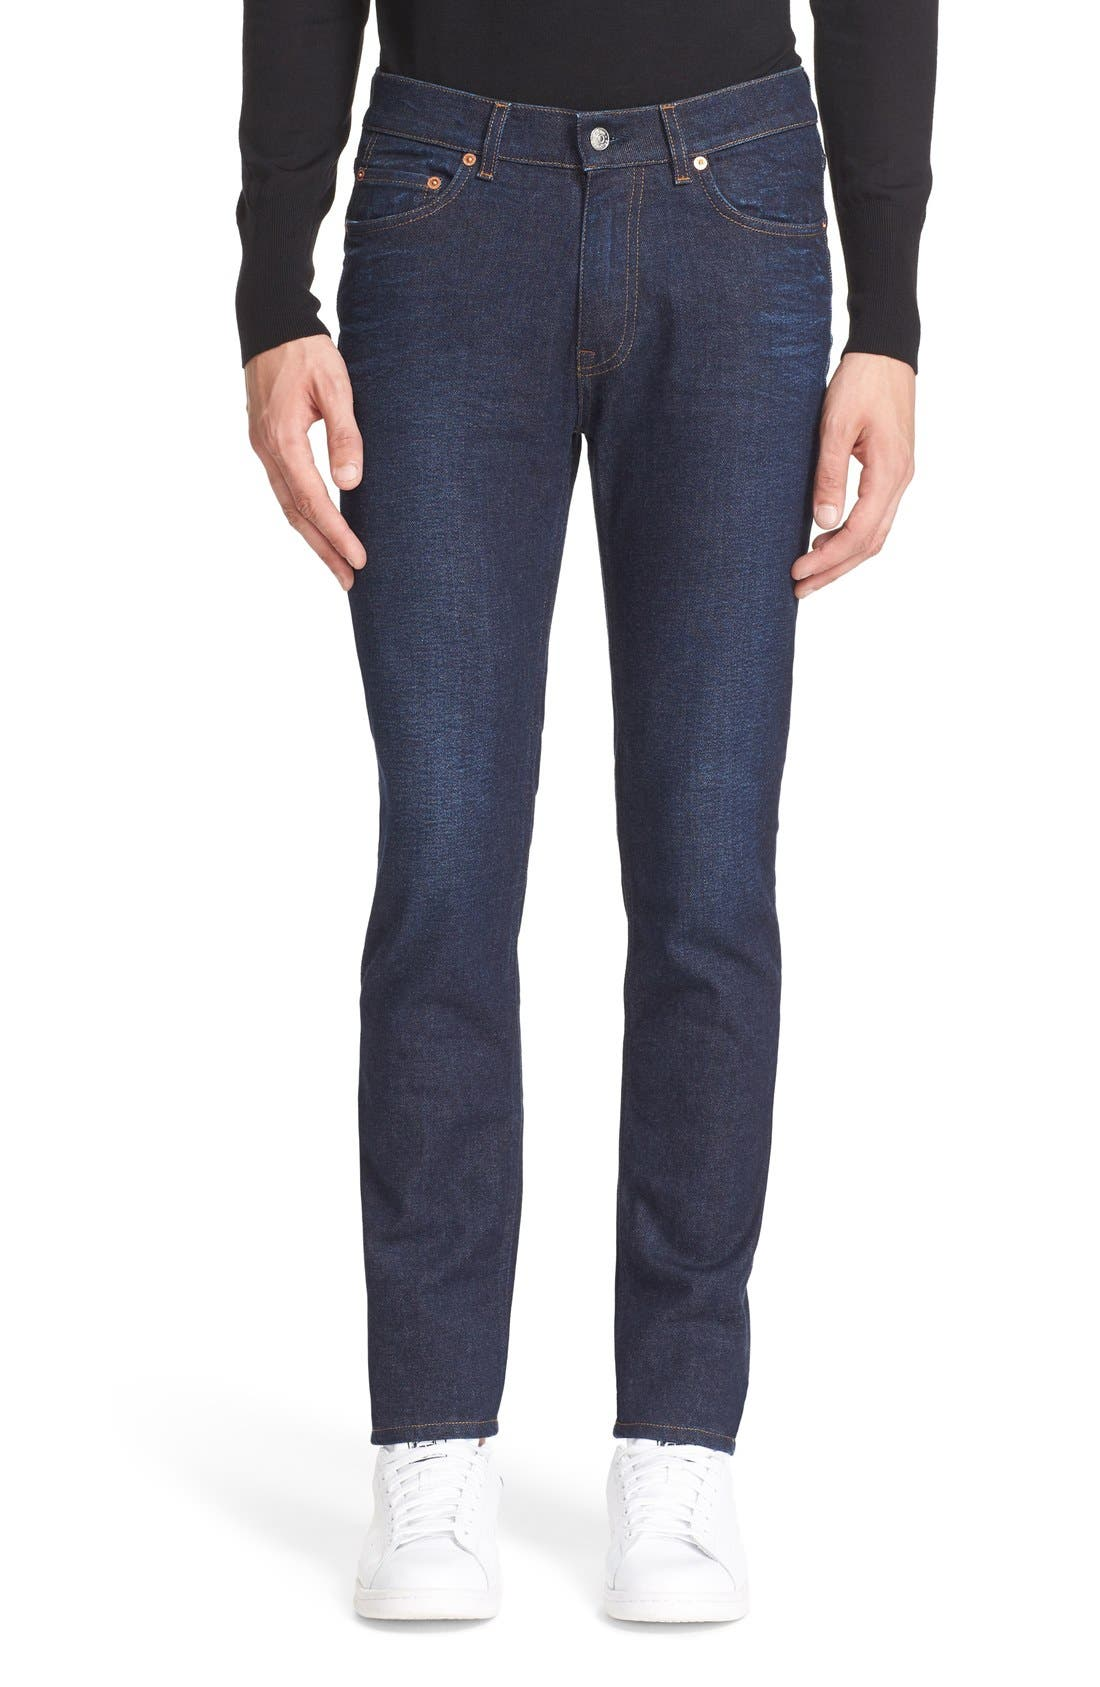 ACNE STUDIOS 'Ace' Slim Fit Jeans